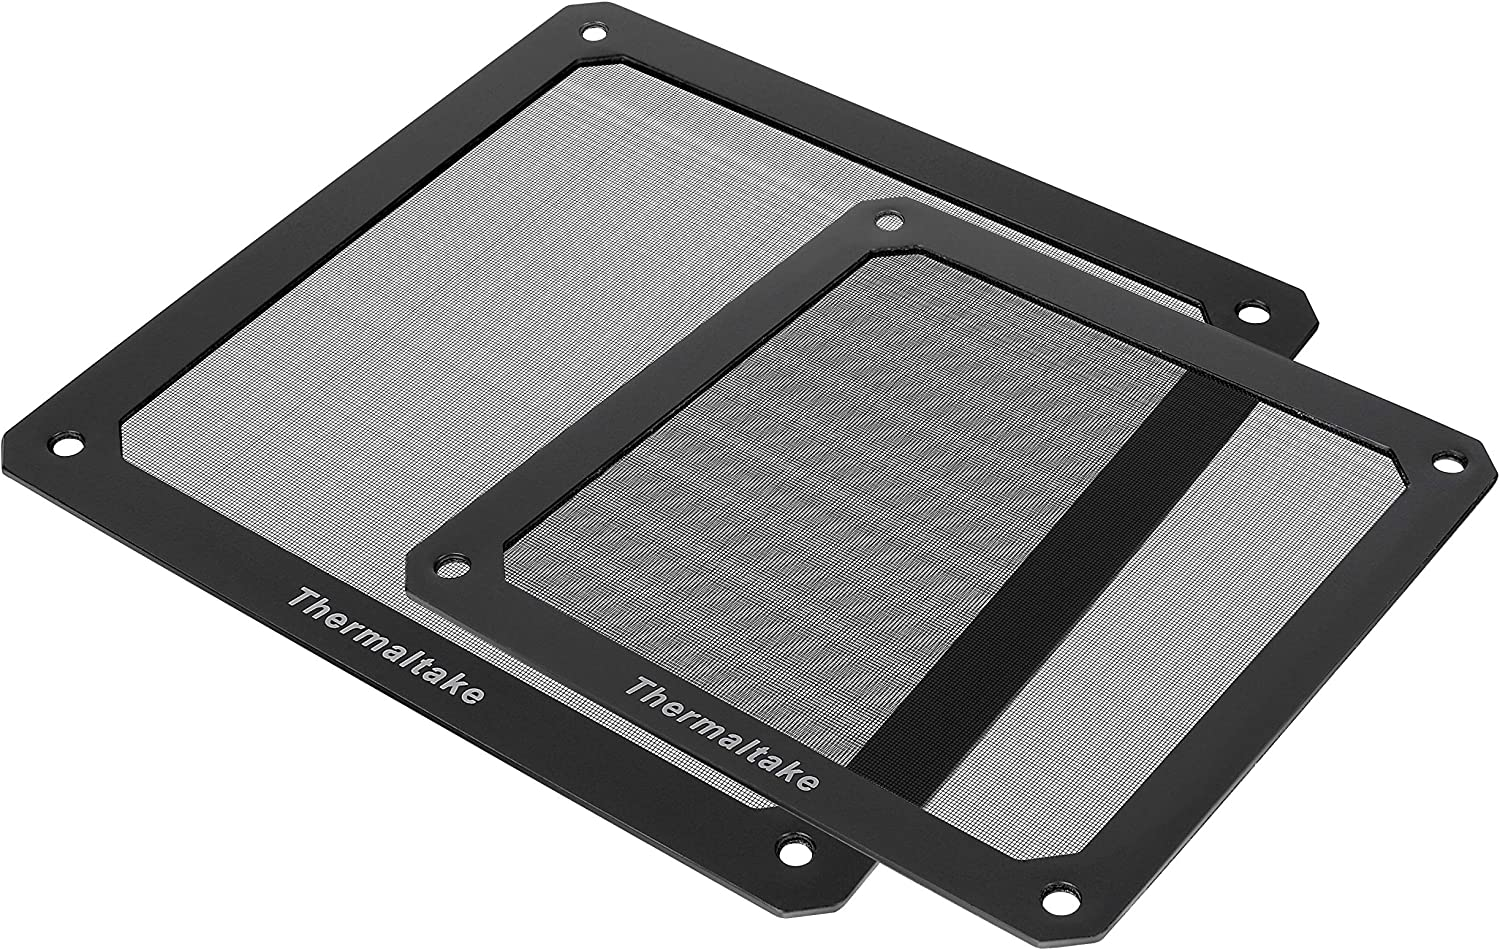 Thermaltake Matric Due 2 Sizes of Magnetic Fan Filter AC-004-ON1NAN-A1